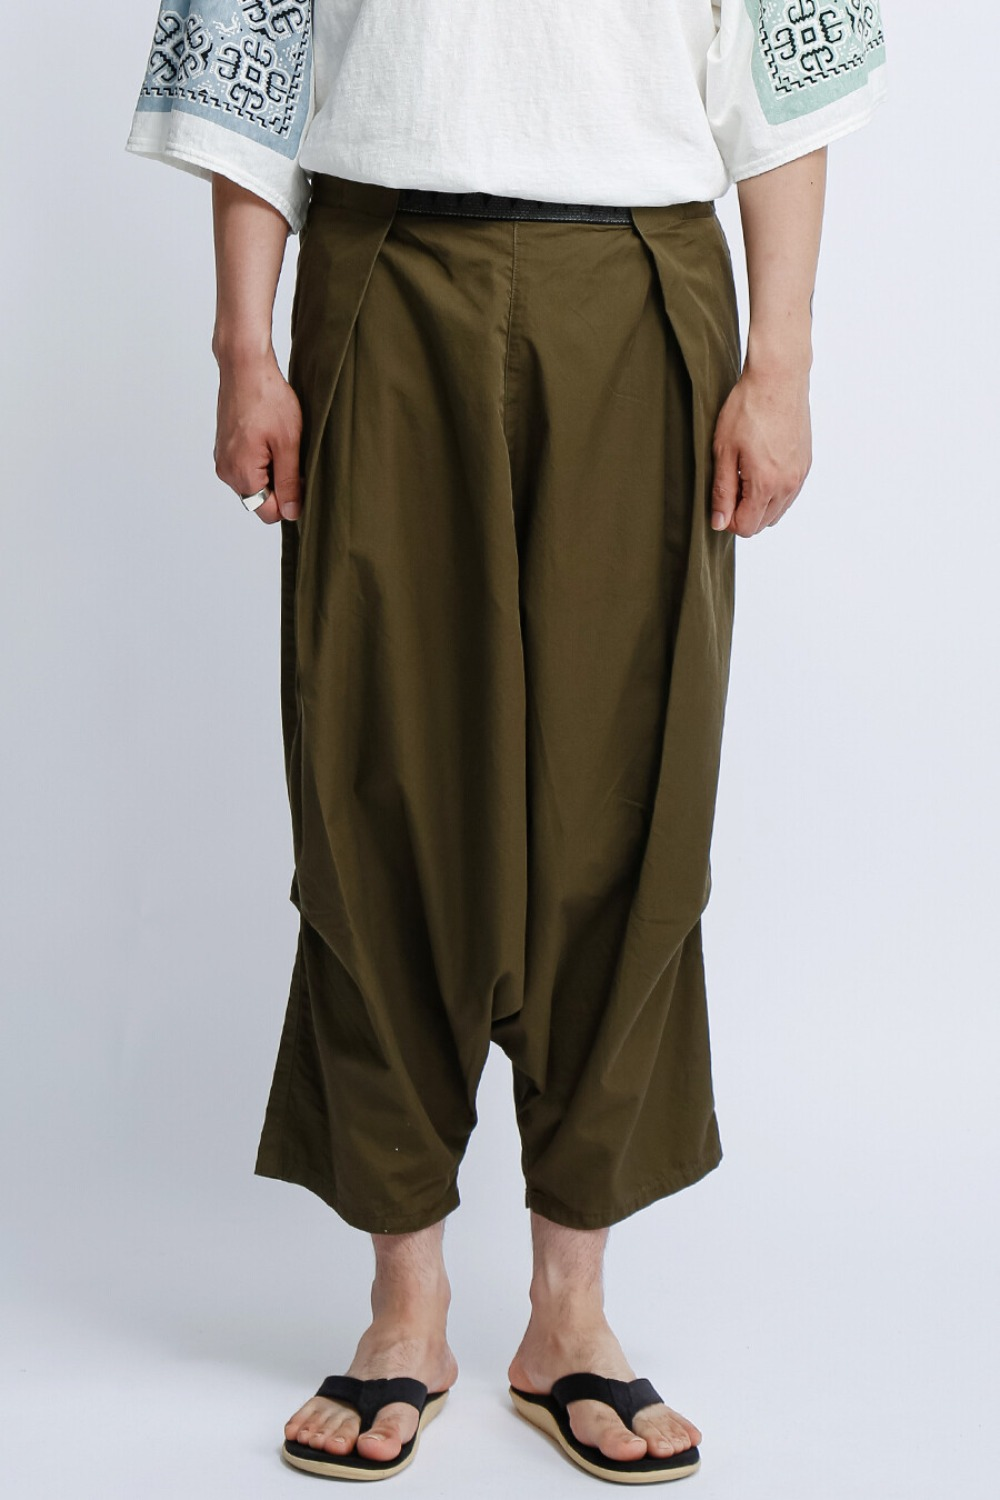 COMA BURBERRY COTTON EASY BEACH GO SALEL PANTS OLIVE